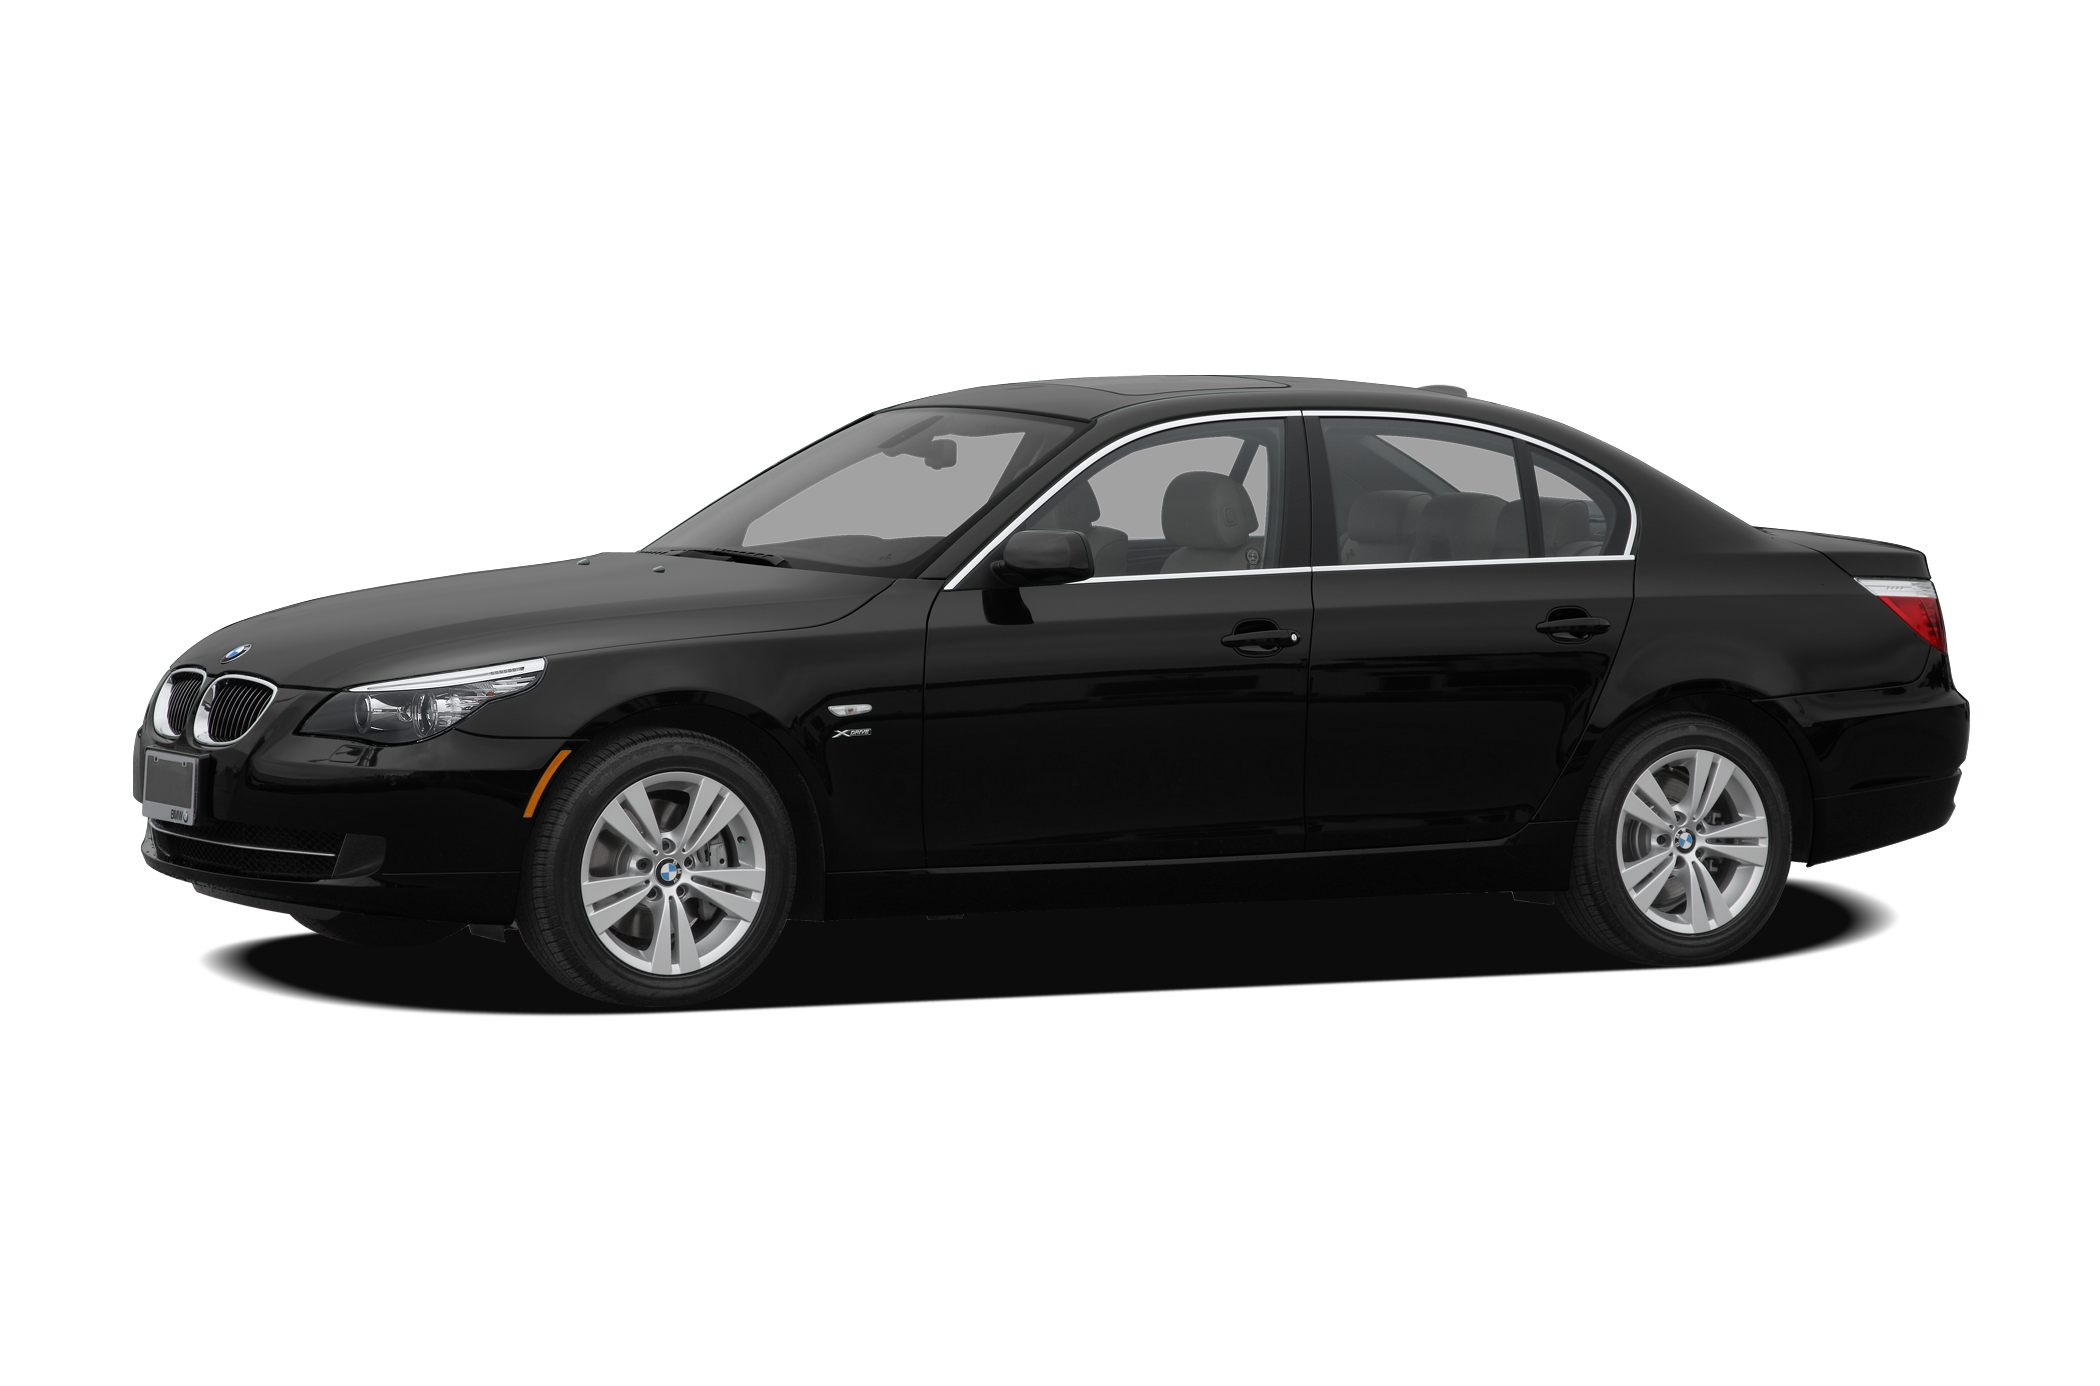 2008 Bmw 535 Owner Reviews And Ratings